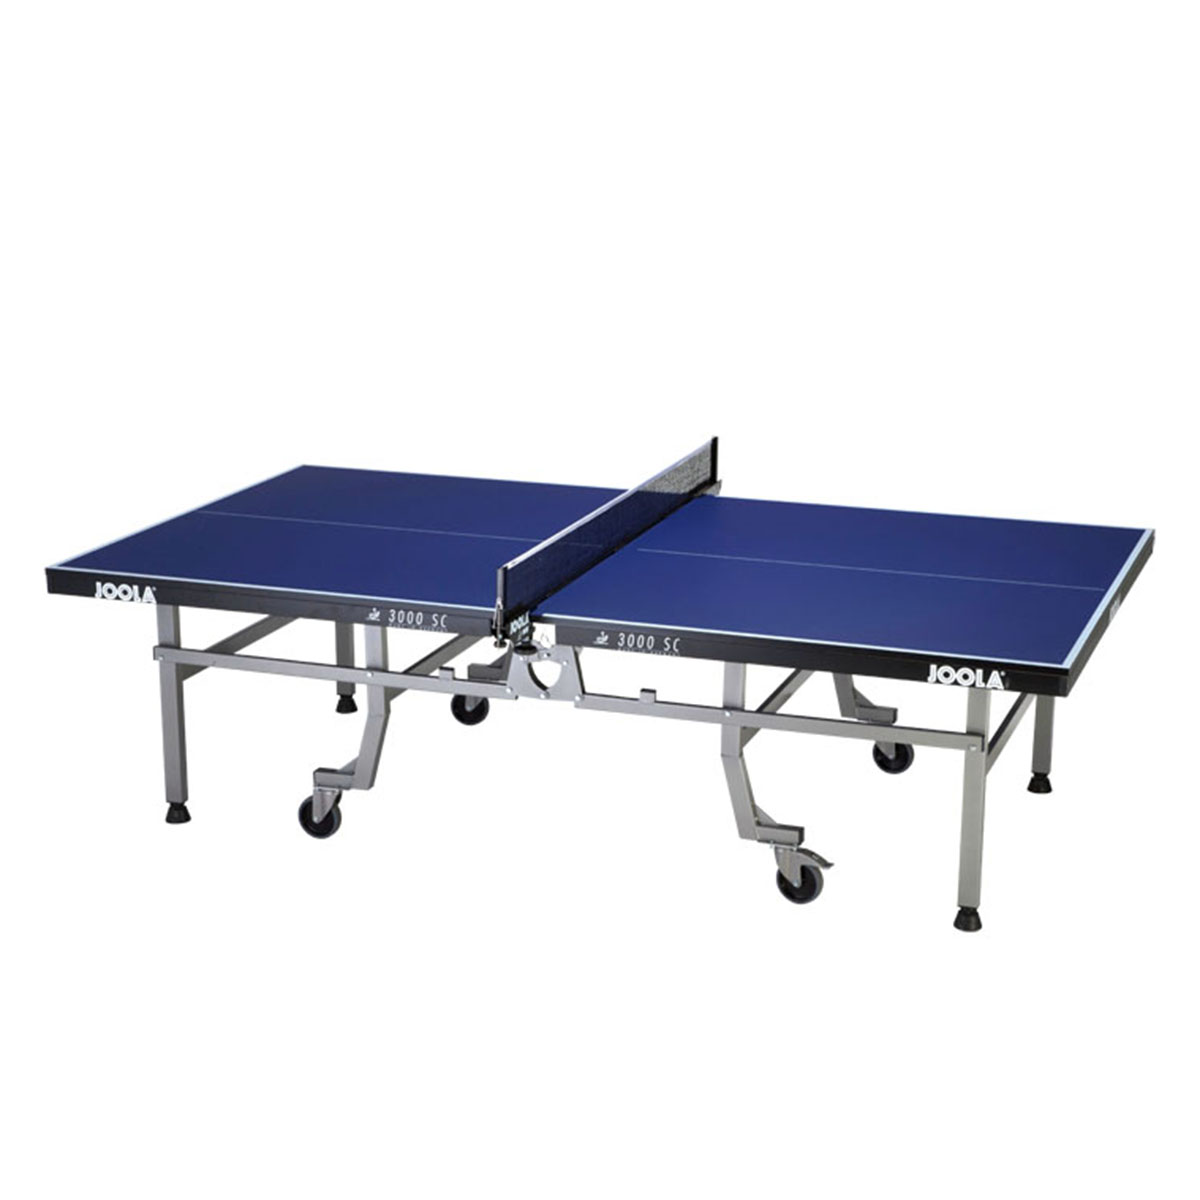 Joola 3000sc Olympic Ping Pong Table  Gametablesonlinem. Rolling Cart With Drawers Wood. Asian Tables. Solid Wood Chest Of Drawers For Sale. Art Desk For 8 Year Old. Self Adhesive Velvet Drawer Liner. Warmer Drawer. Collapsible Desk Chair. Pc Help Desk